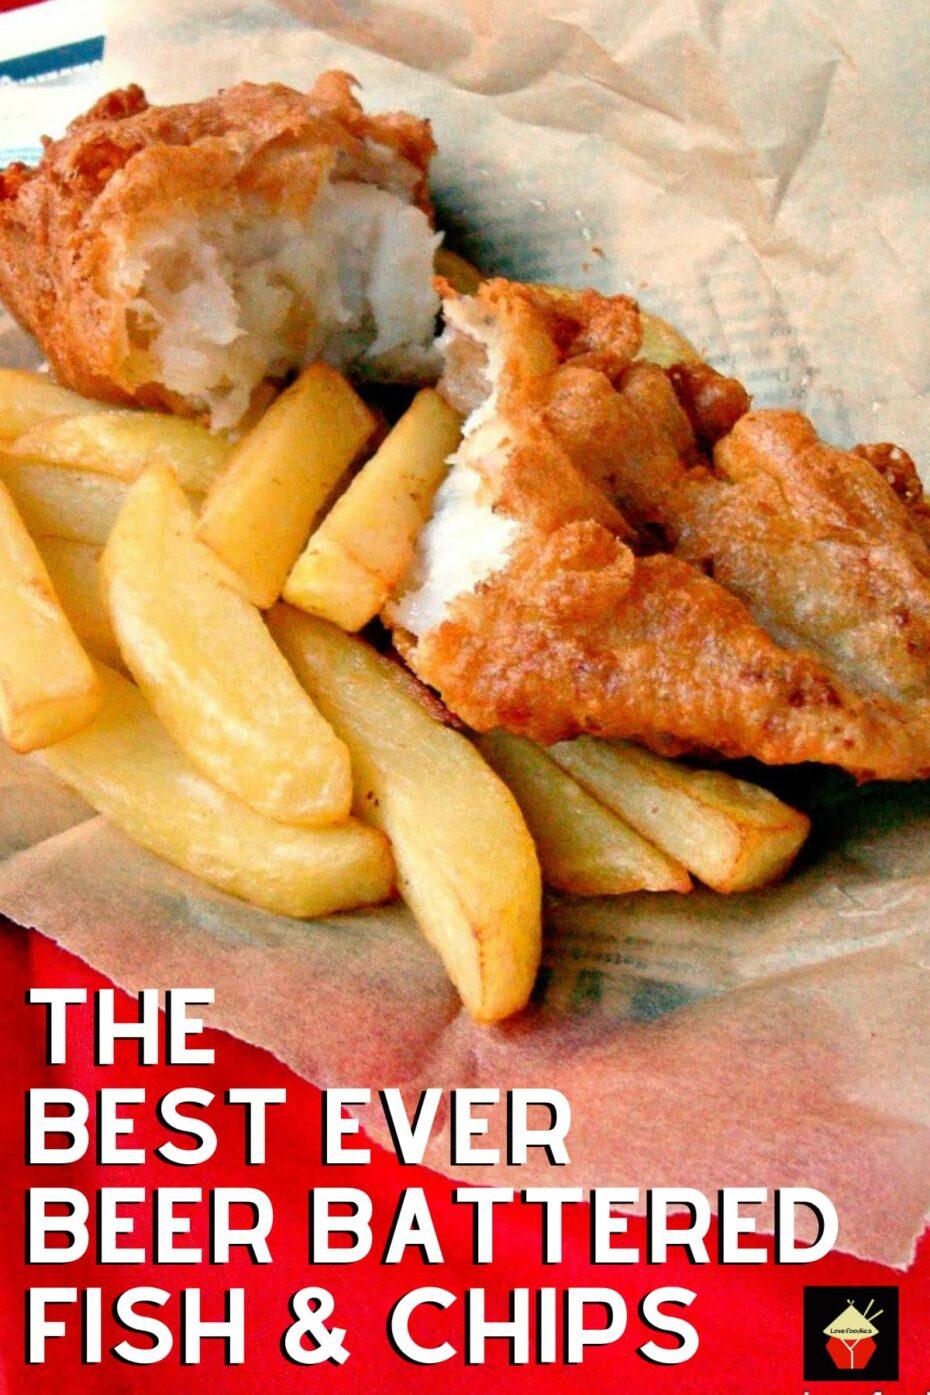 The BEST EVER Beer Battered Fish and Chips. How to cook homemade perfect beer-battered fish and chips recipe, crispy, golden battered cod, fantastic flavors, simple recipe, great meal with family & friends. The BEST EVER fish n chip recipe!